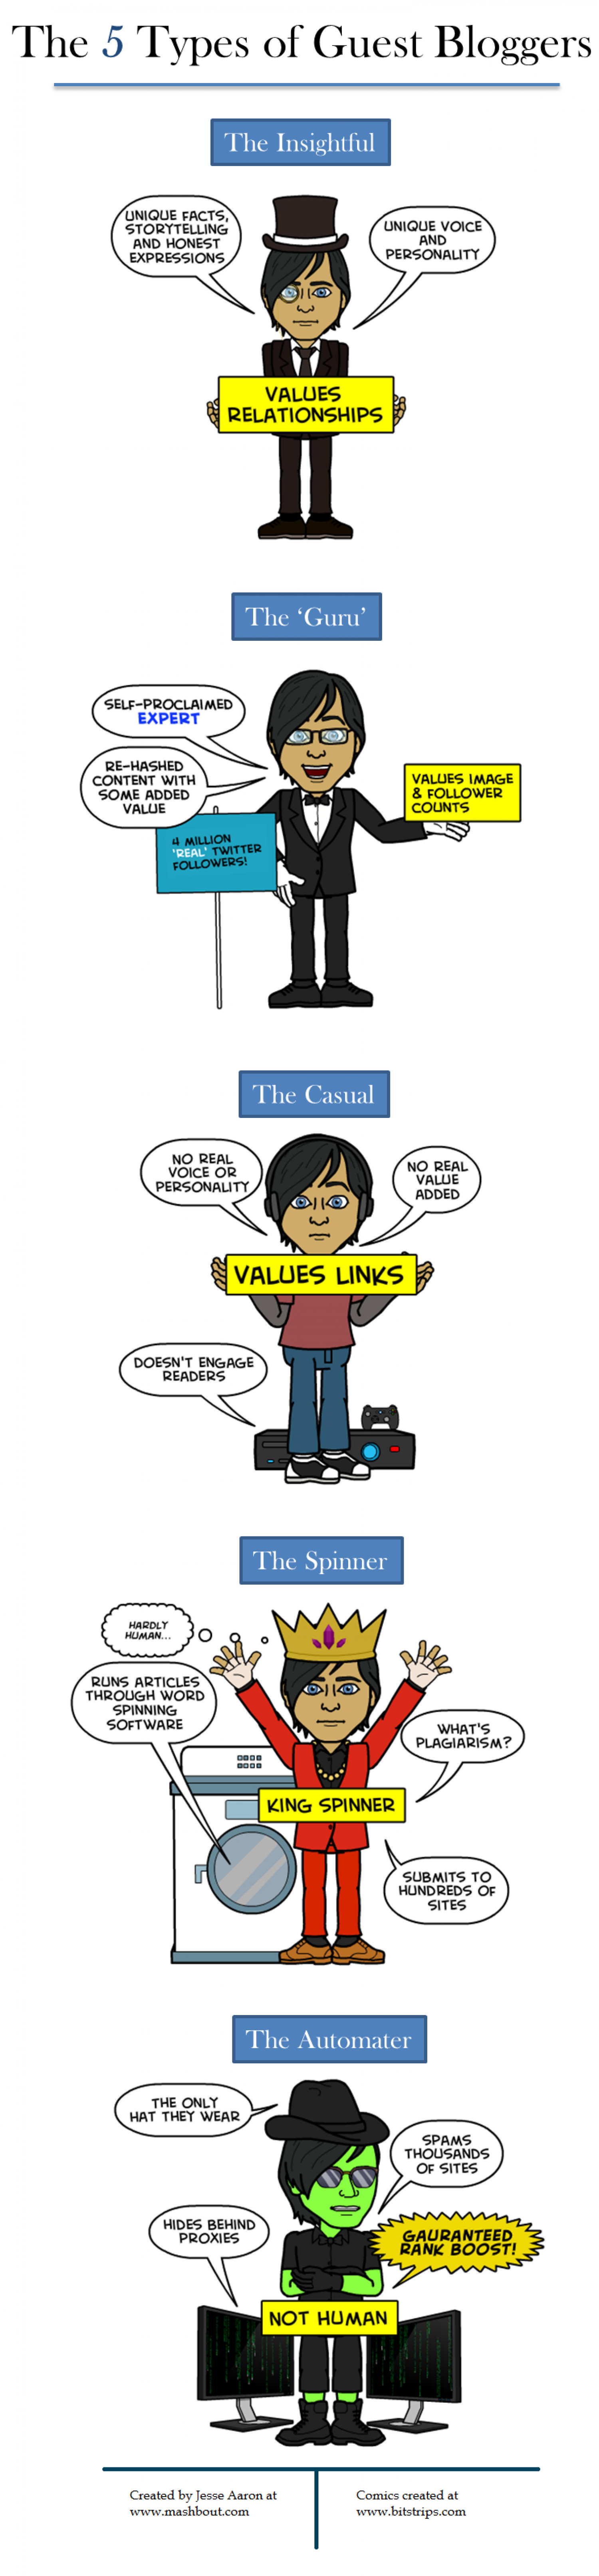 The 5 Types of Guest Bloggers Infographic